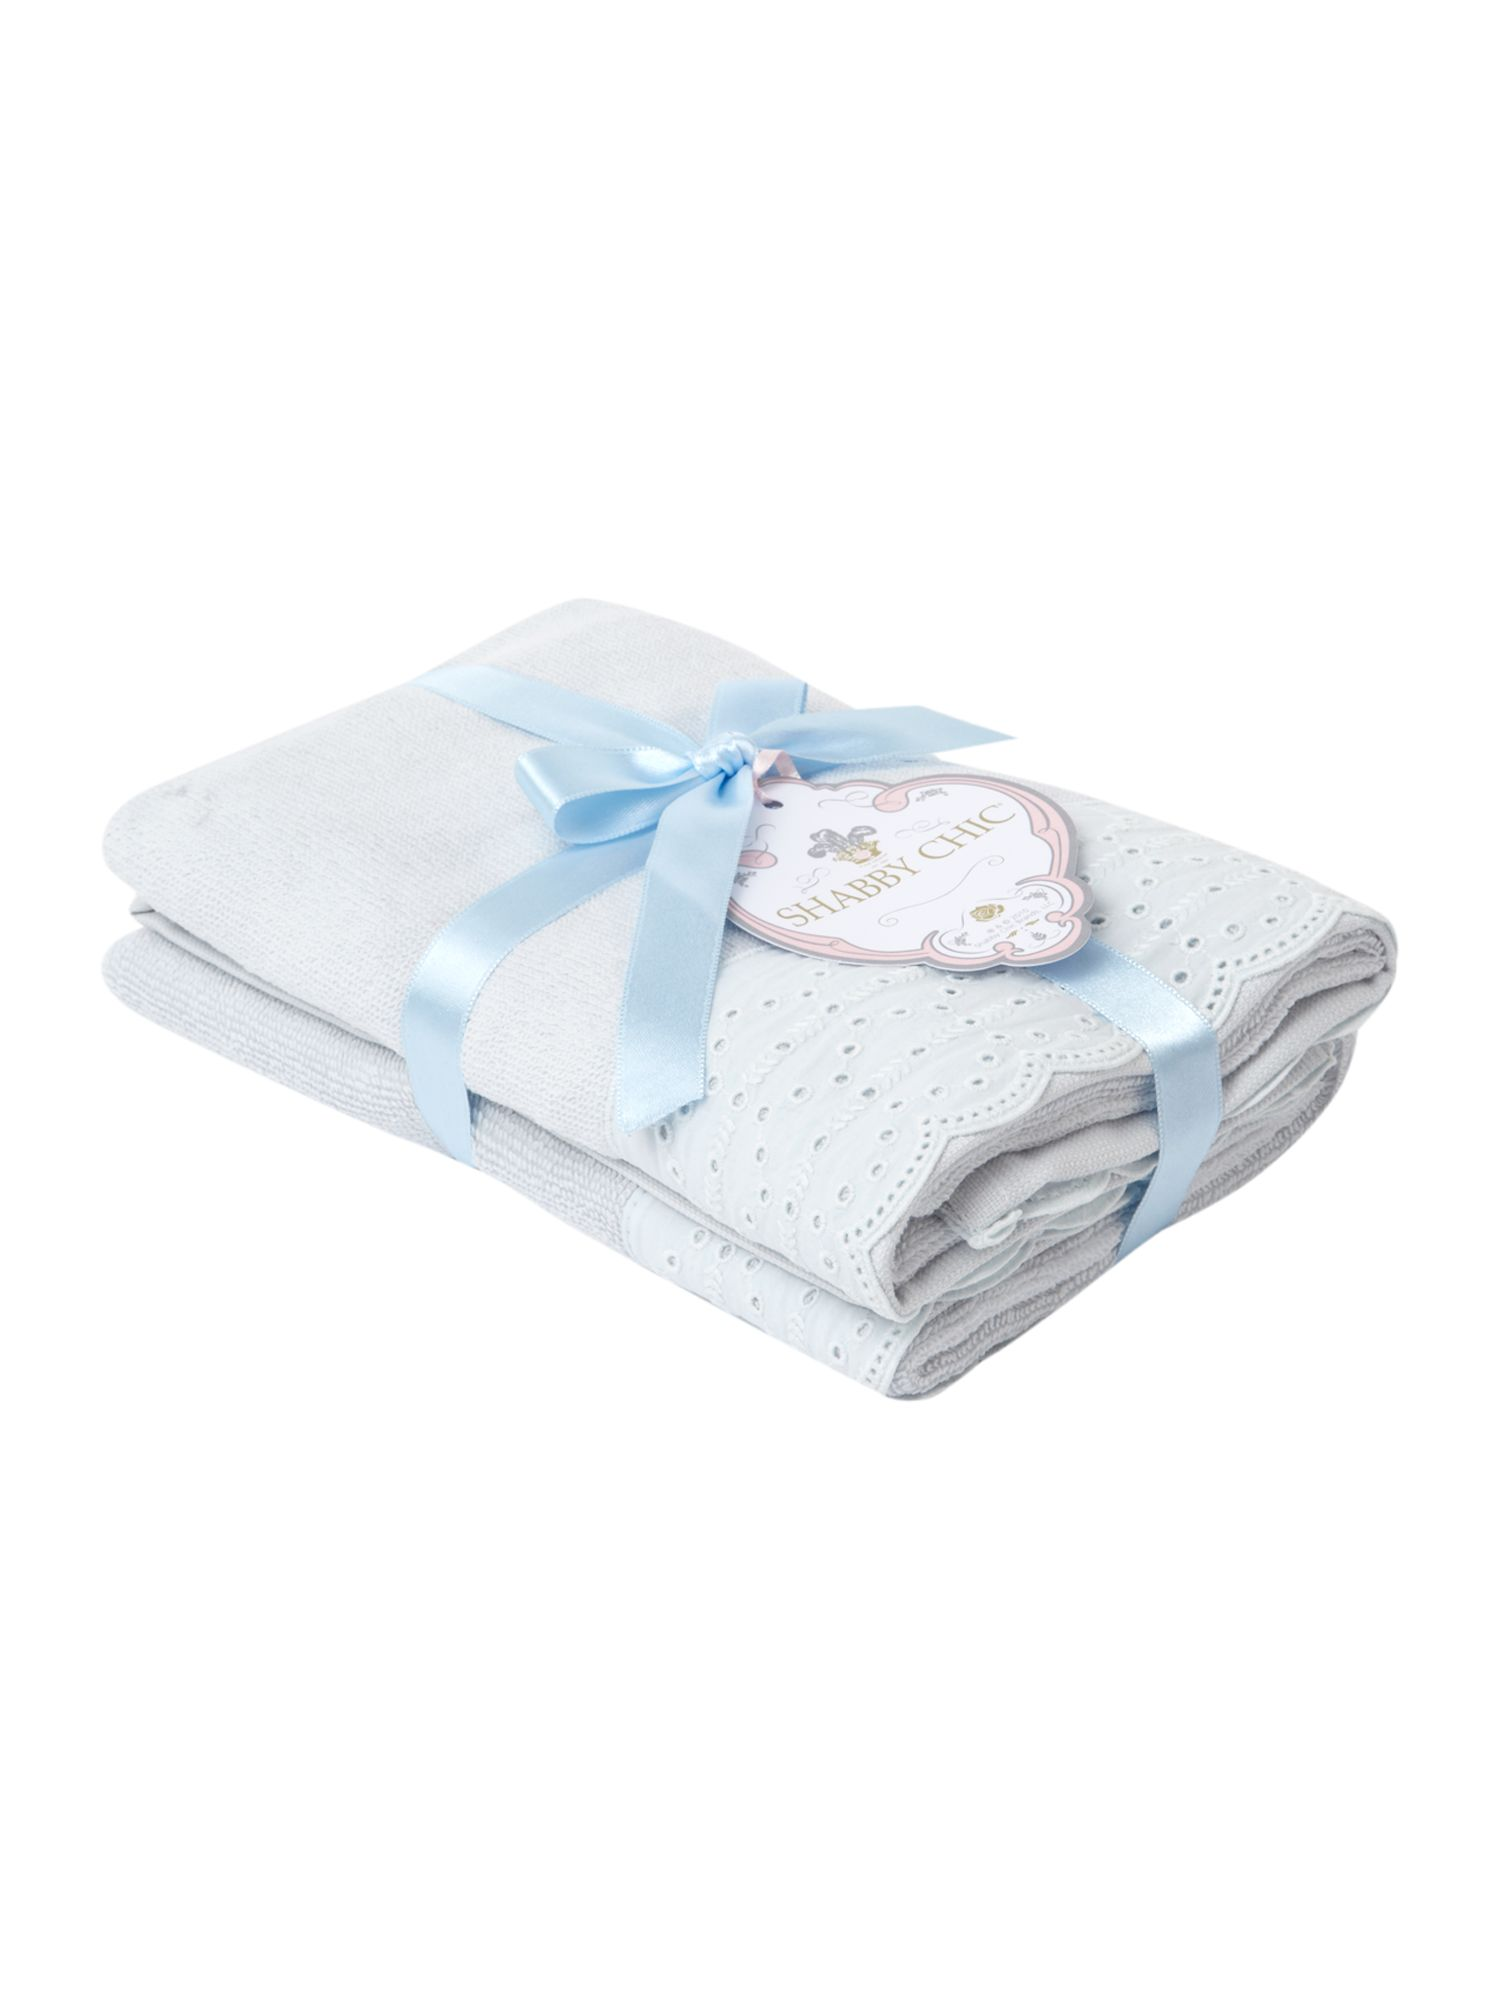 Lace trim guest towel pack of two in duck egg